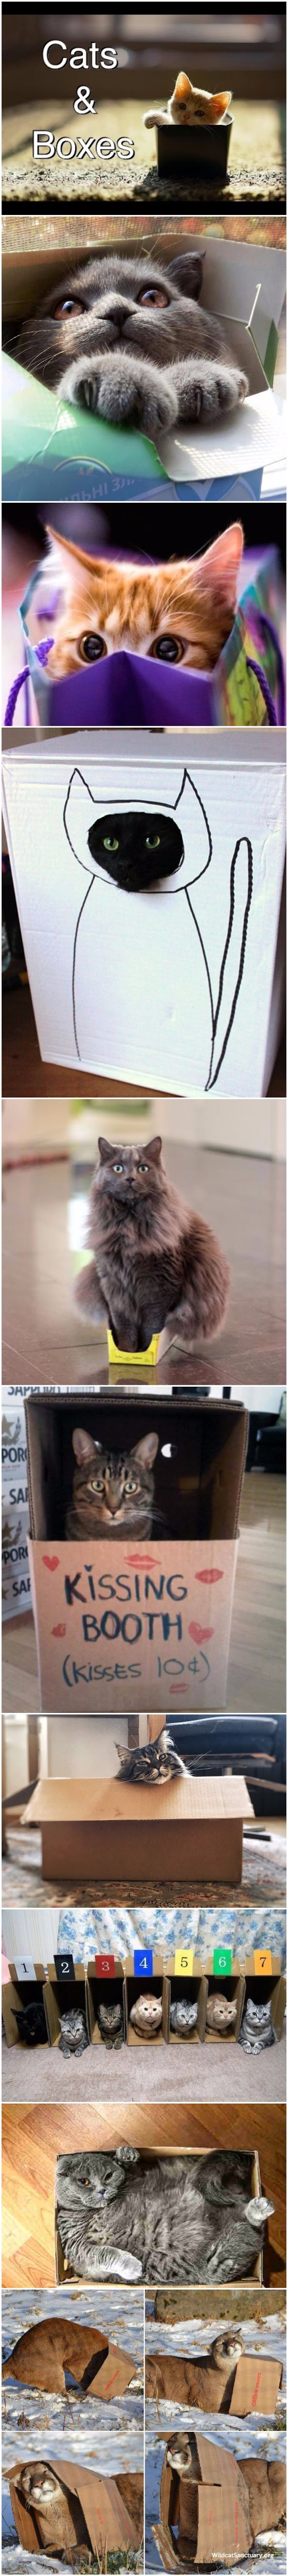 Funny cats in boxes picture collection